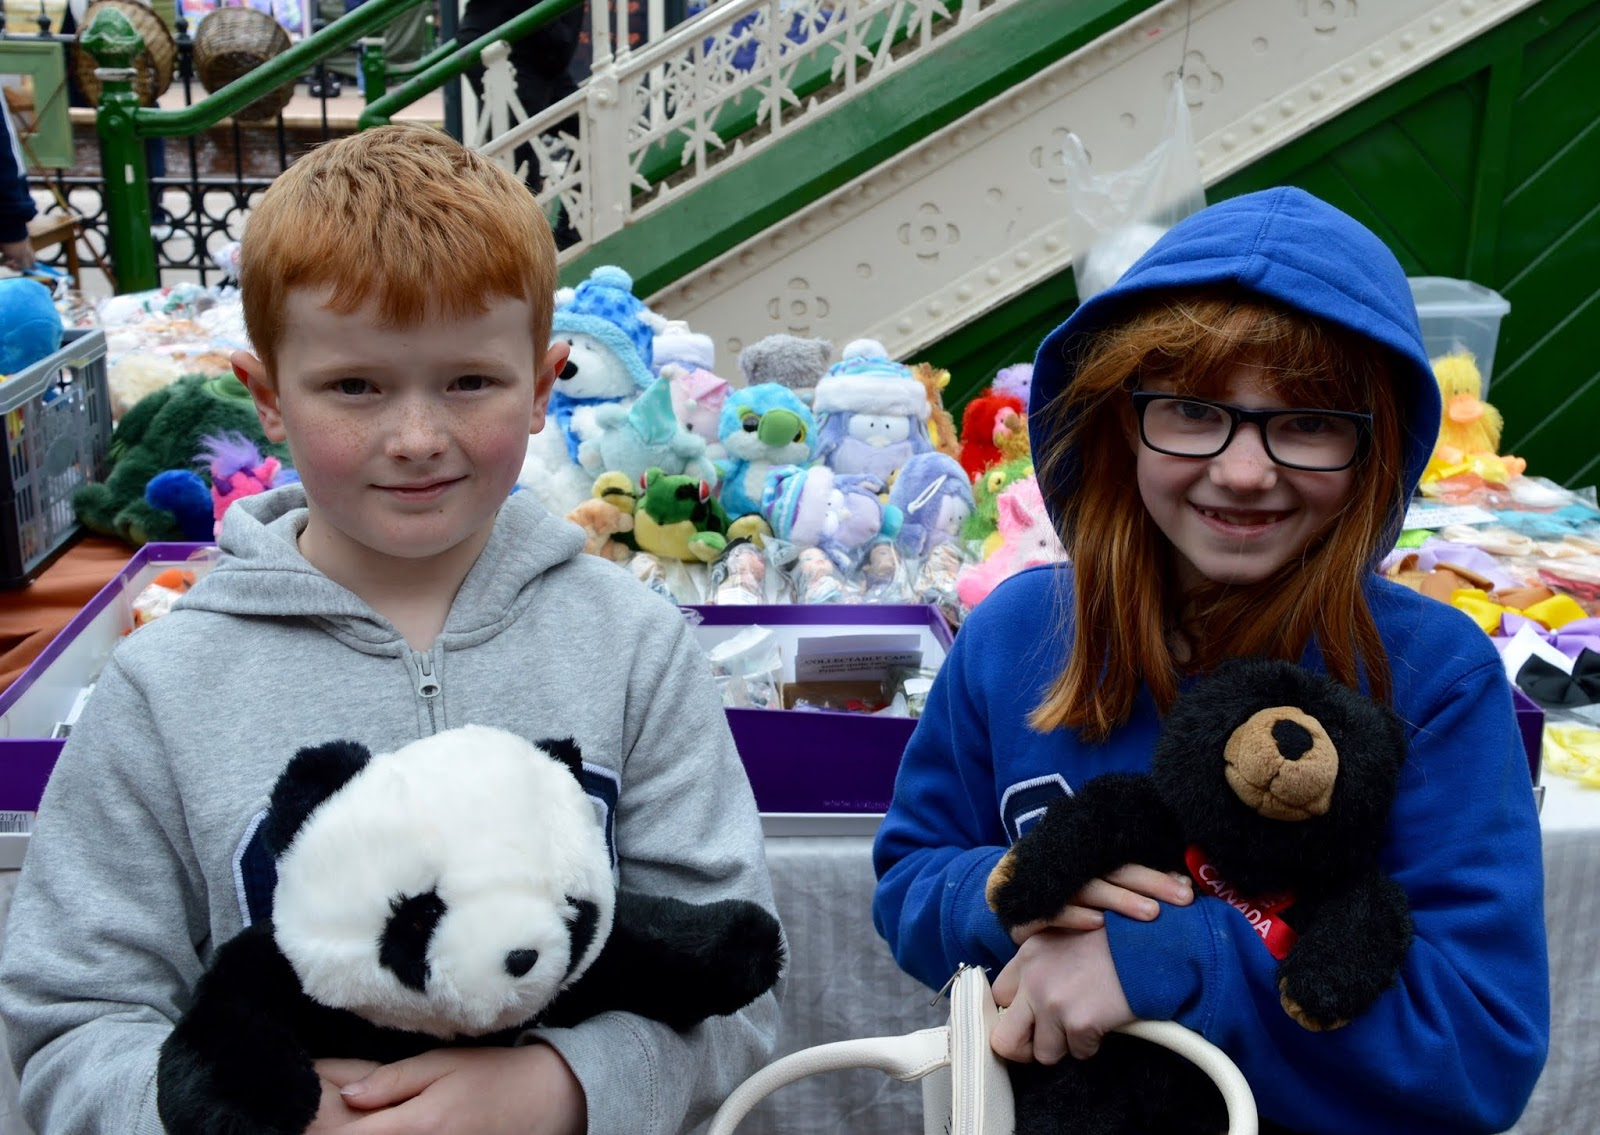 The Seasider Open Top Bus Tour Whitley Bay | Tickets, Prices, Timetables & Where To Visit - Soft Toys from Tynemouth Market